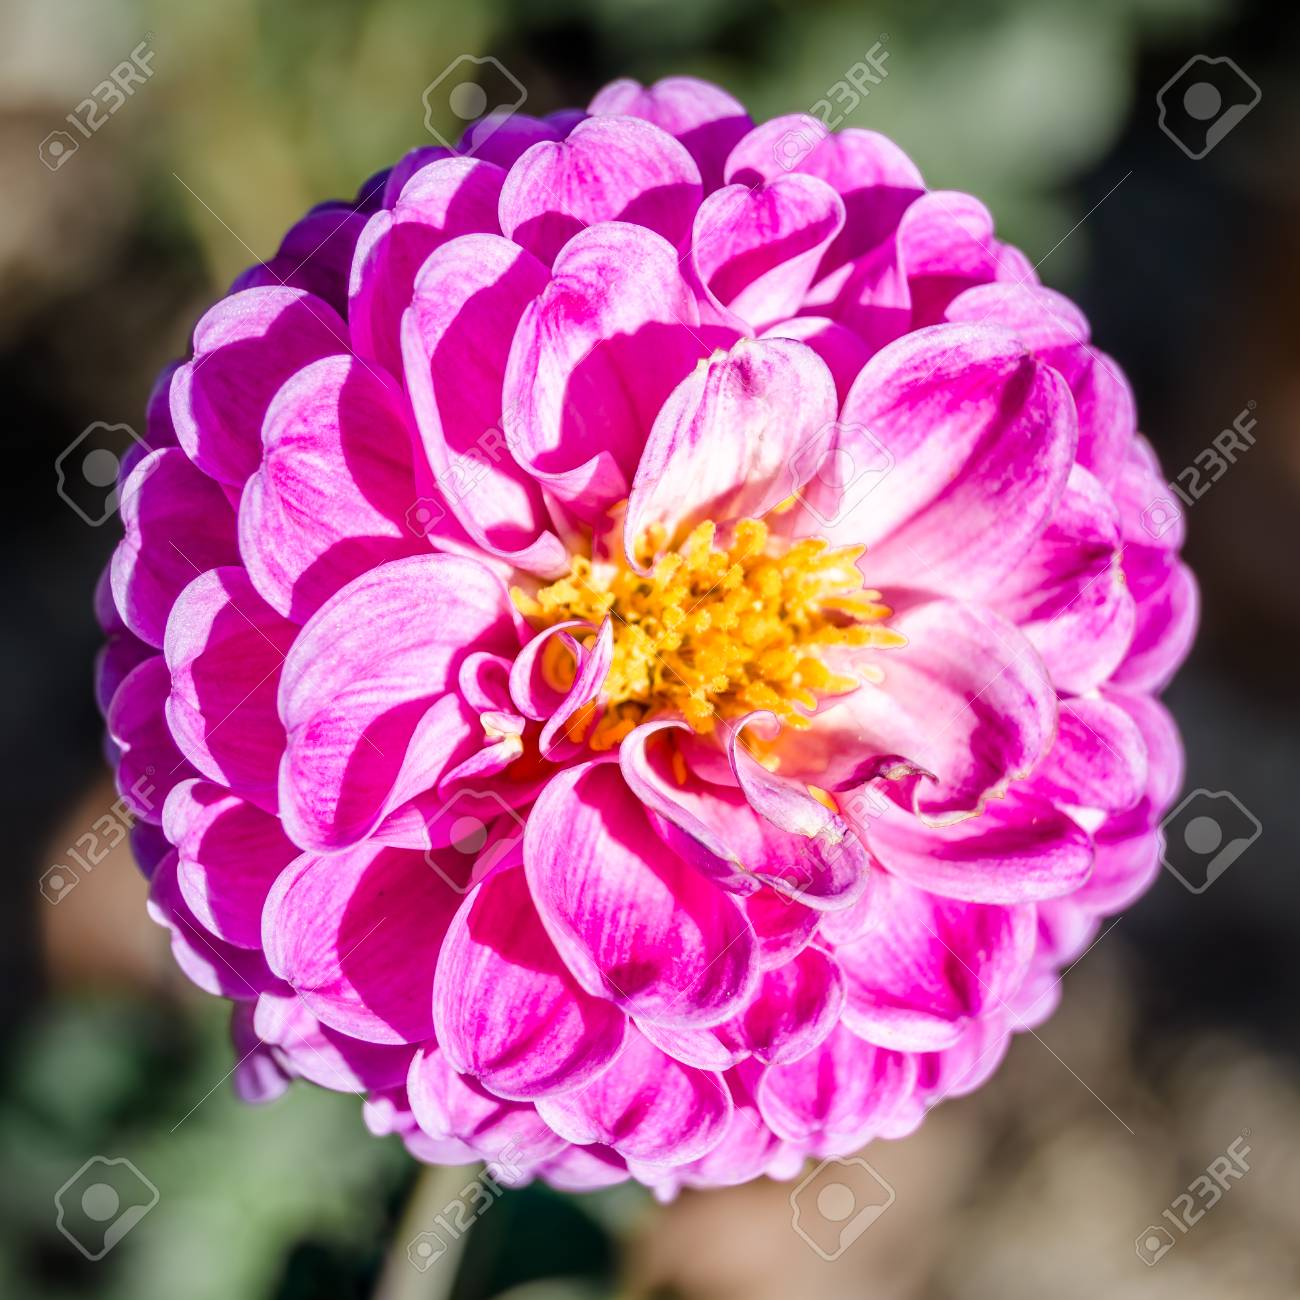 Detail of a colorful dahlia flower natural background stock photo detail of a colorful dahlia flower natural background stock photo 90495207 izmirmasajfo